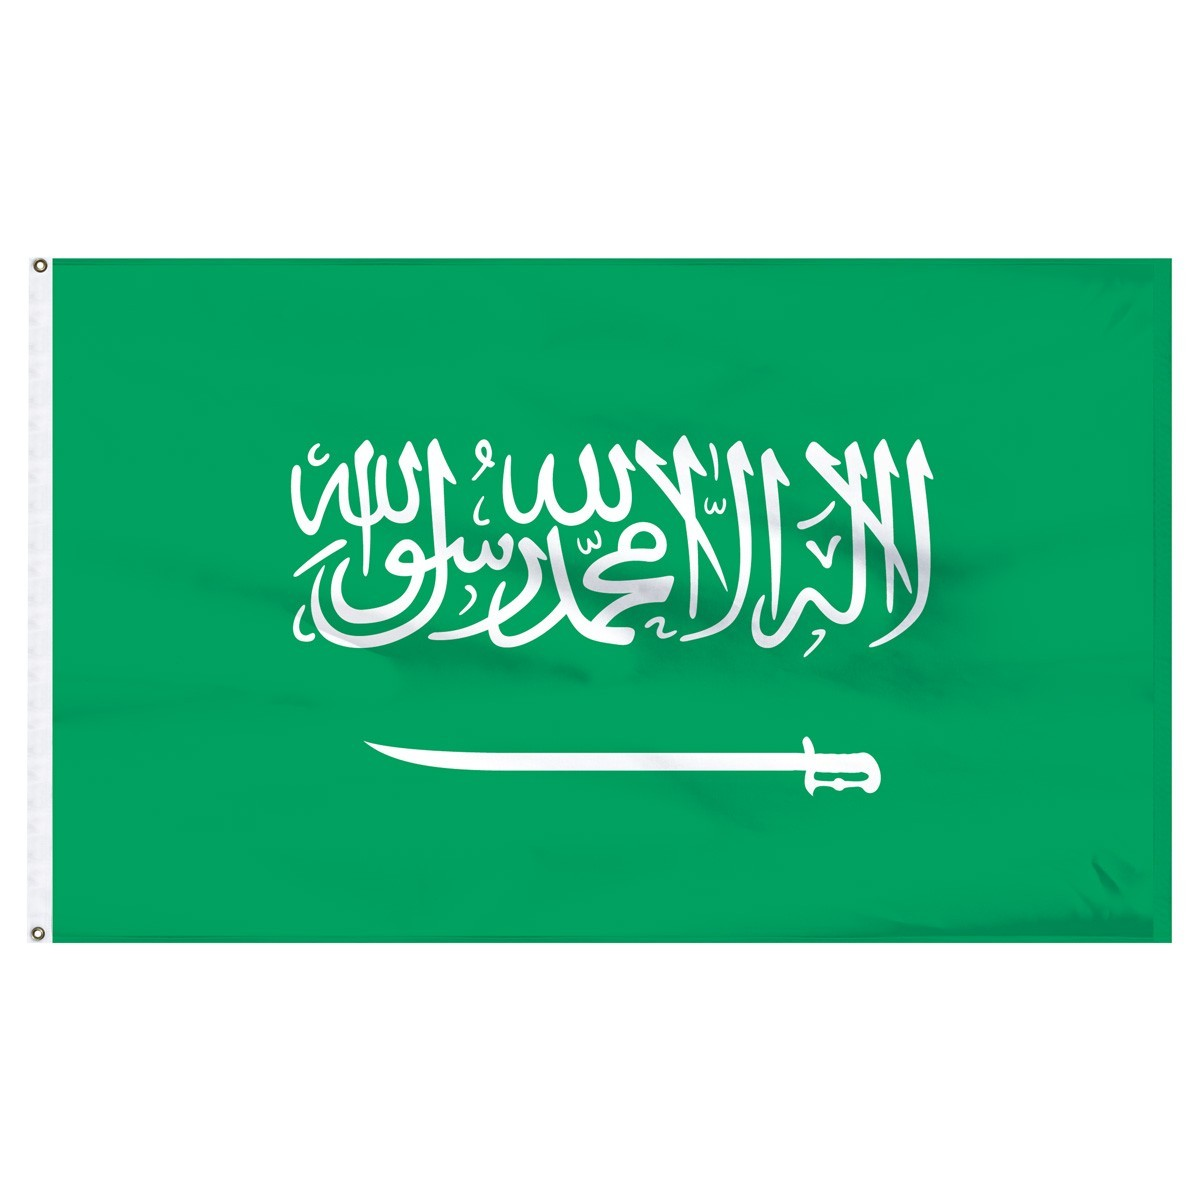 Saudi Arabia 3' x 5' Outdoor Nylon Flag